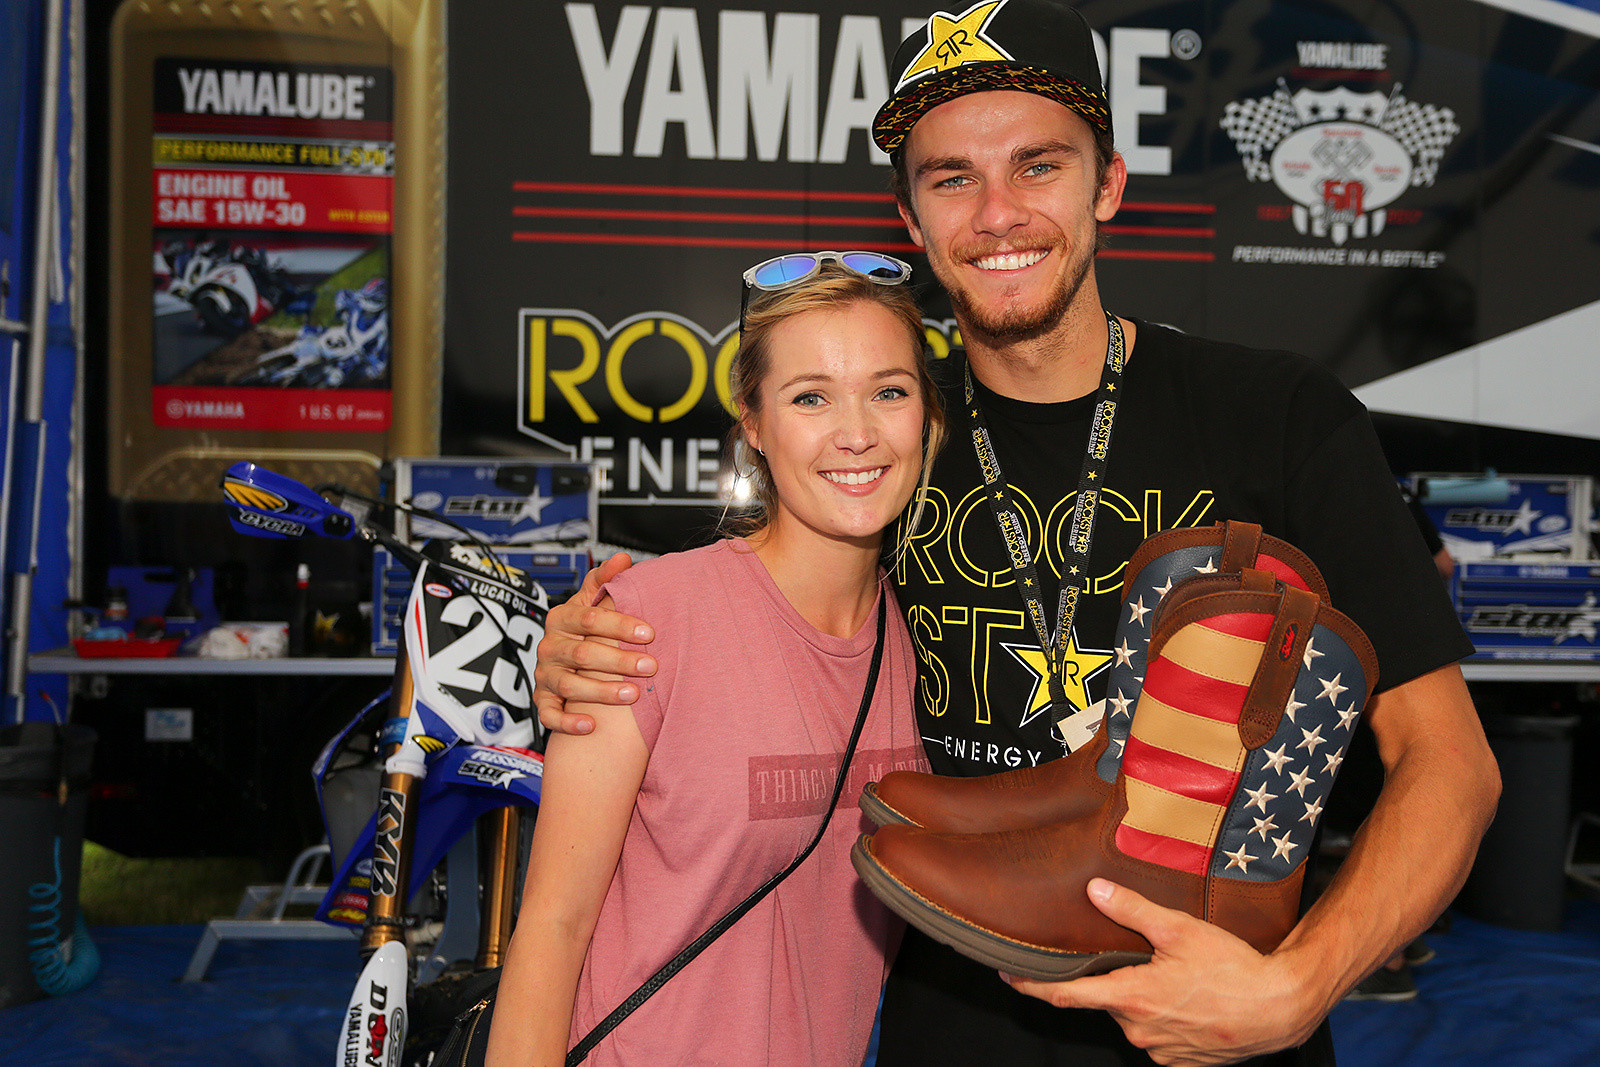 Aaron Plessinger saw the same set of boots on Jimmy Albertson earlier this season, and was in awe. Georgia and Jimmy hooked him up with a set, which she delivered at RedBud. Aaron was a happy guy.